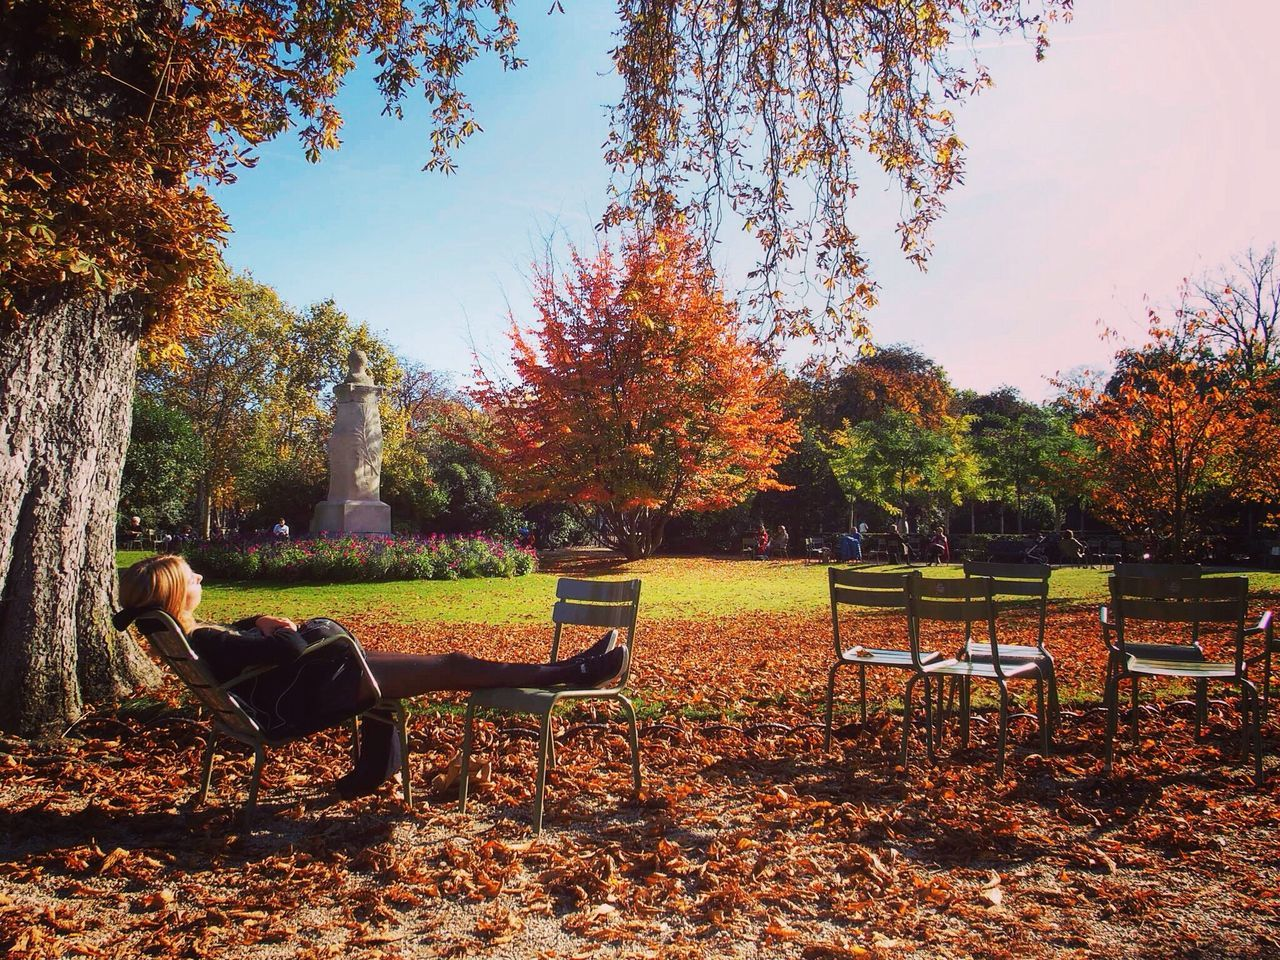 Chilling. Jardin Du Luxembourg Paris Orange Color Girl Travel Destinations Tree Garden Park - Man Made Space Bench Nature Outdoors Green Color People Autumn Day Grass Full Length Sunny Landscape Chilling Romantic Parisian Park Beauty In Nature Sky